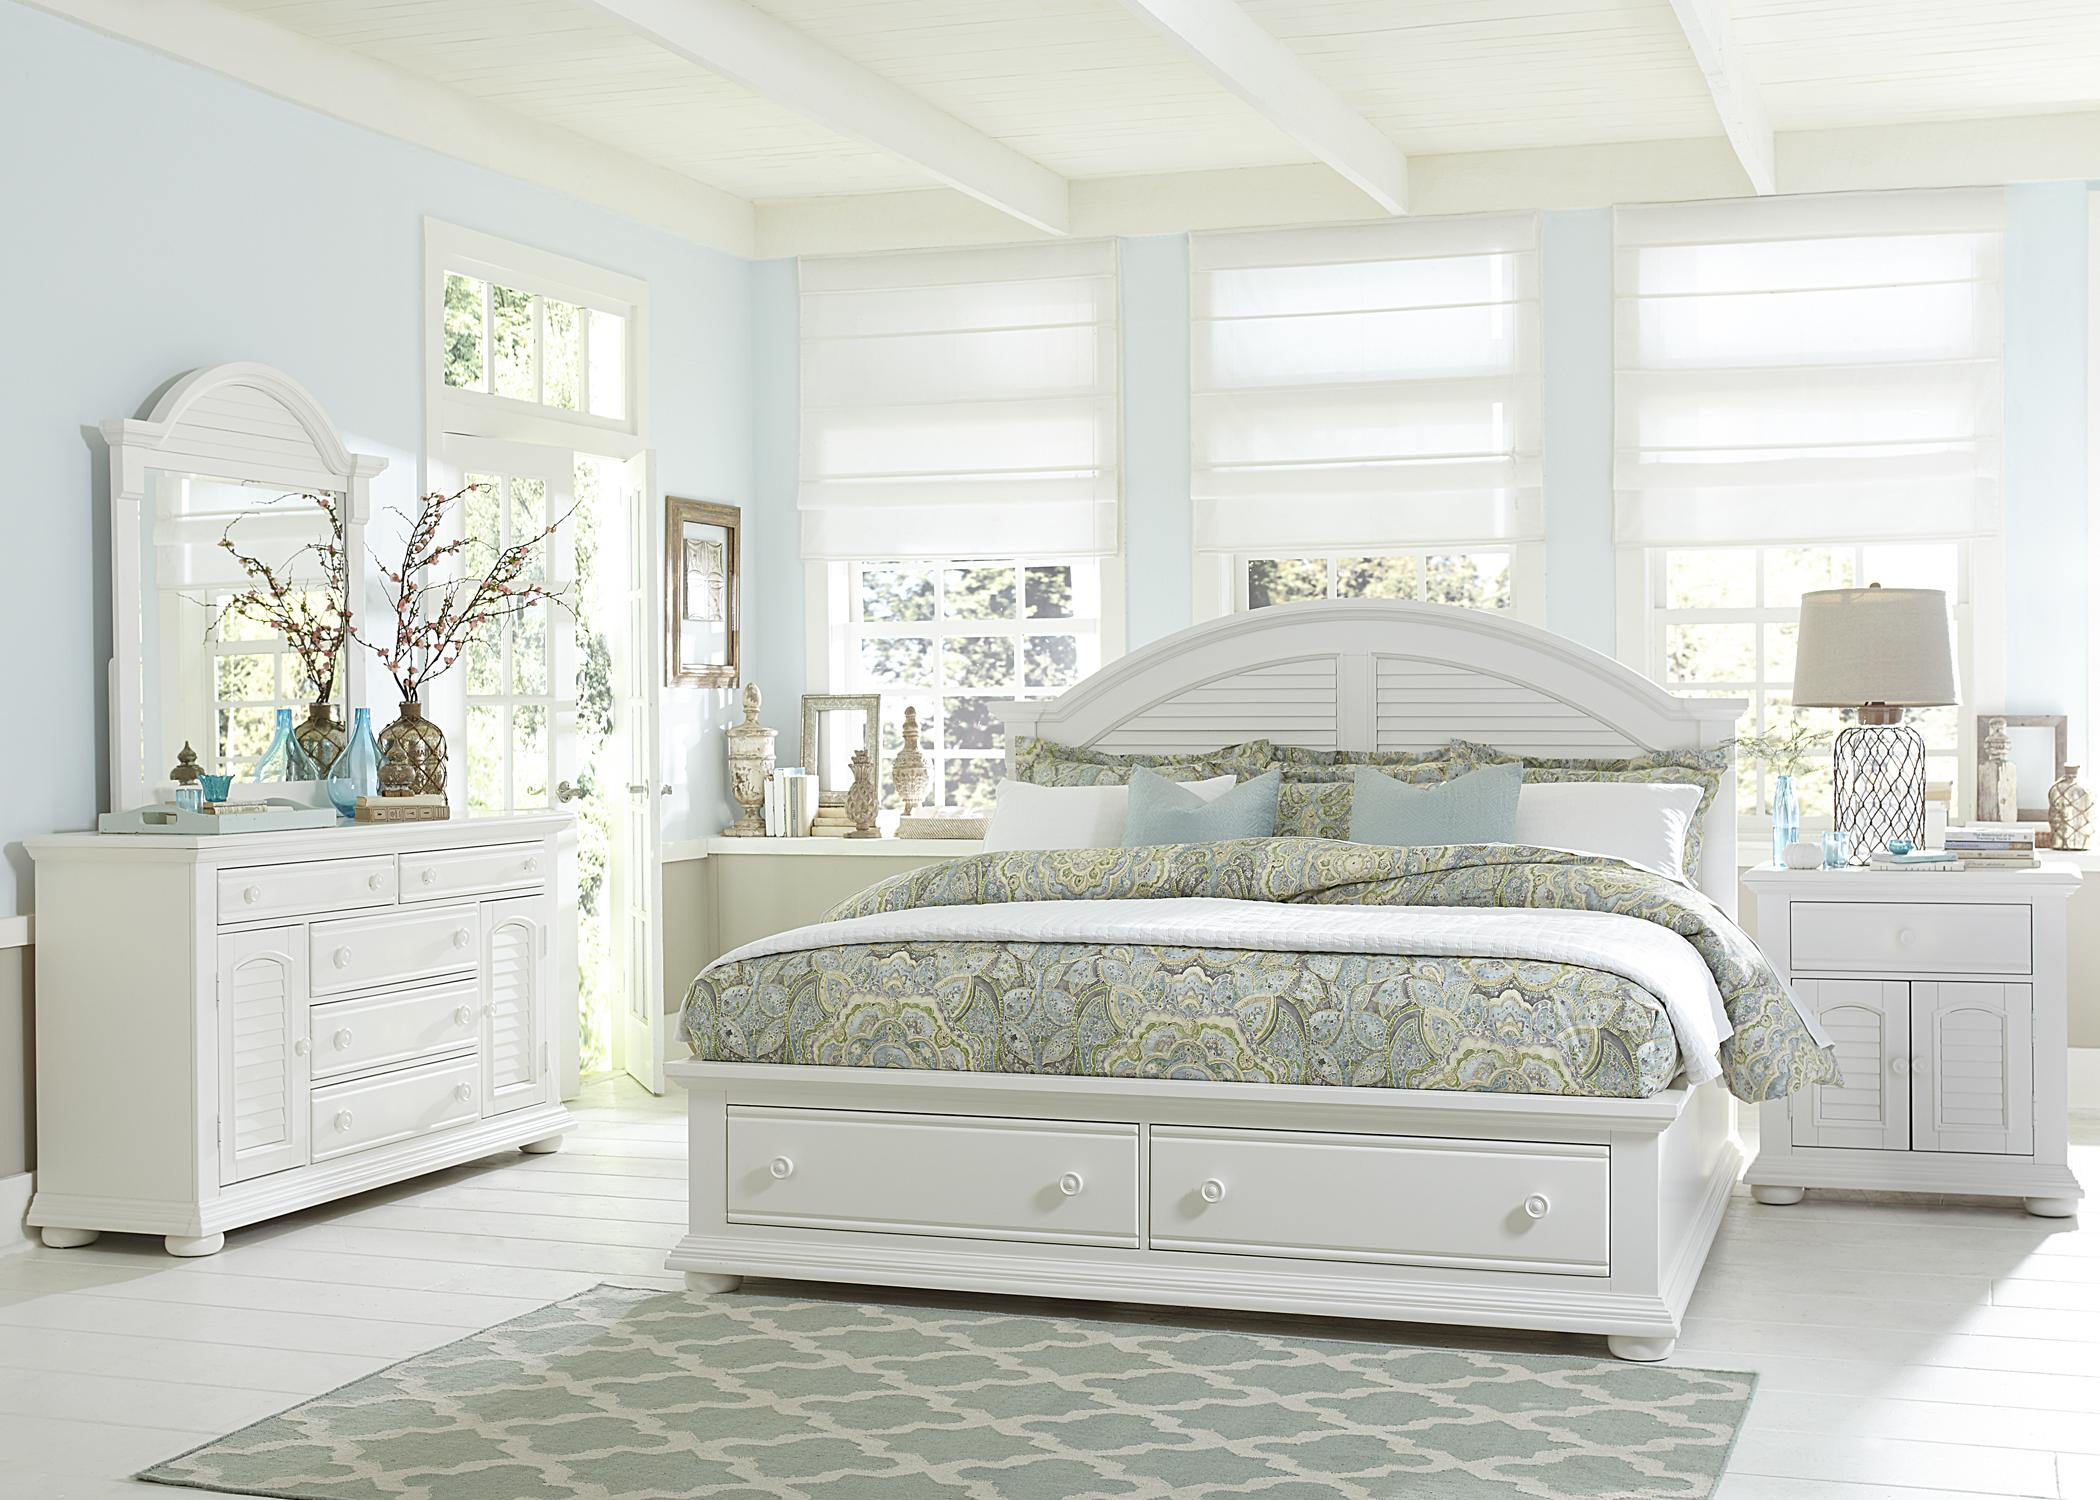 Summer House Queen Bedroom Group by Liberty Furniture at Catalog Outlet